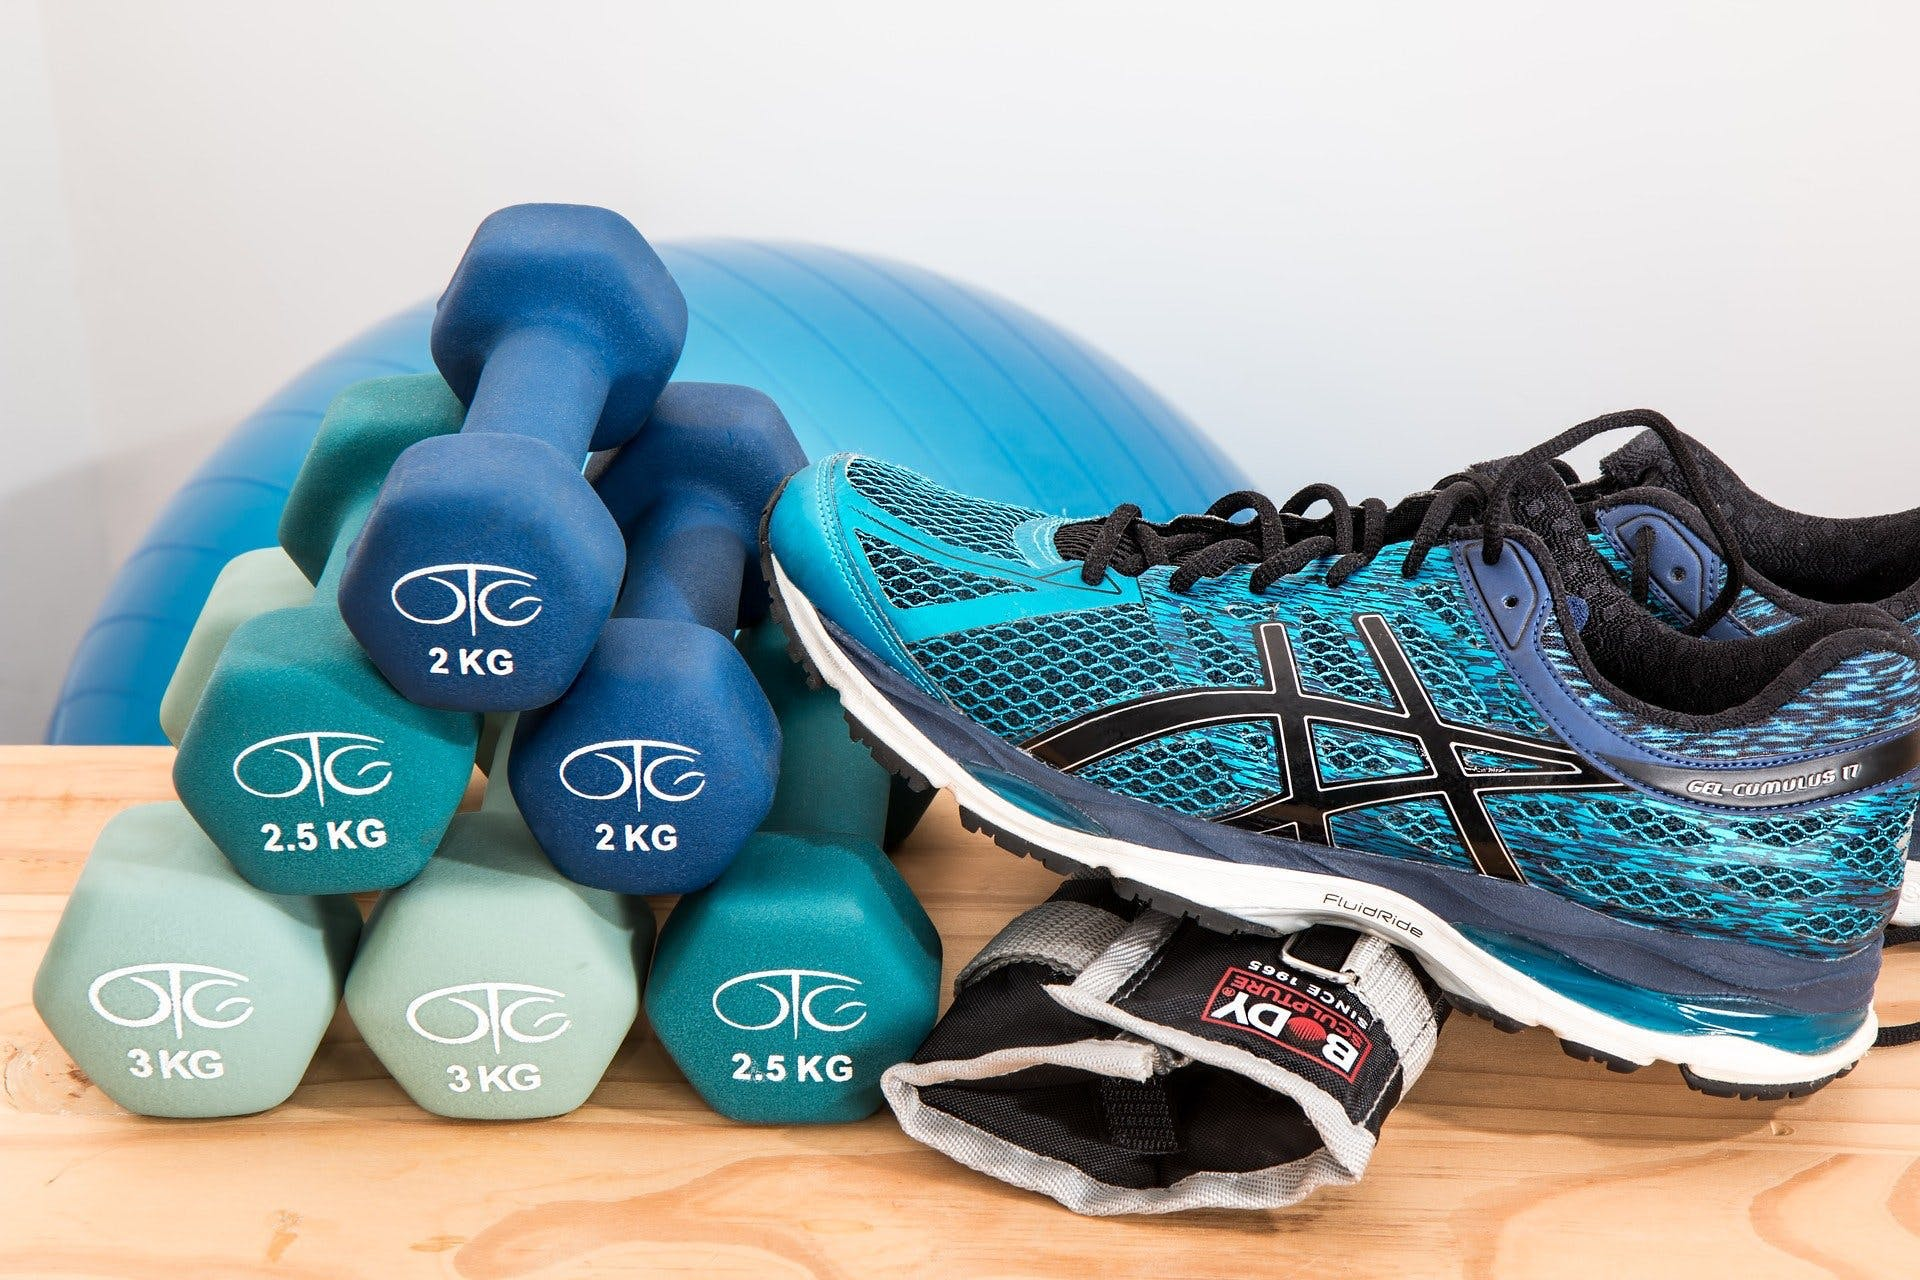 Club Raw-Fit. At Home Workout. Sneakers and Dumbbells